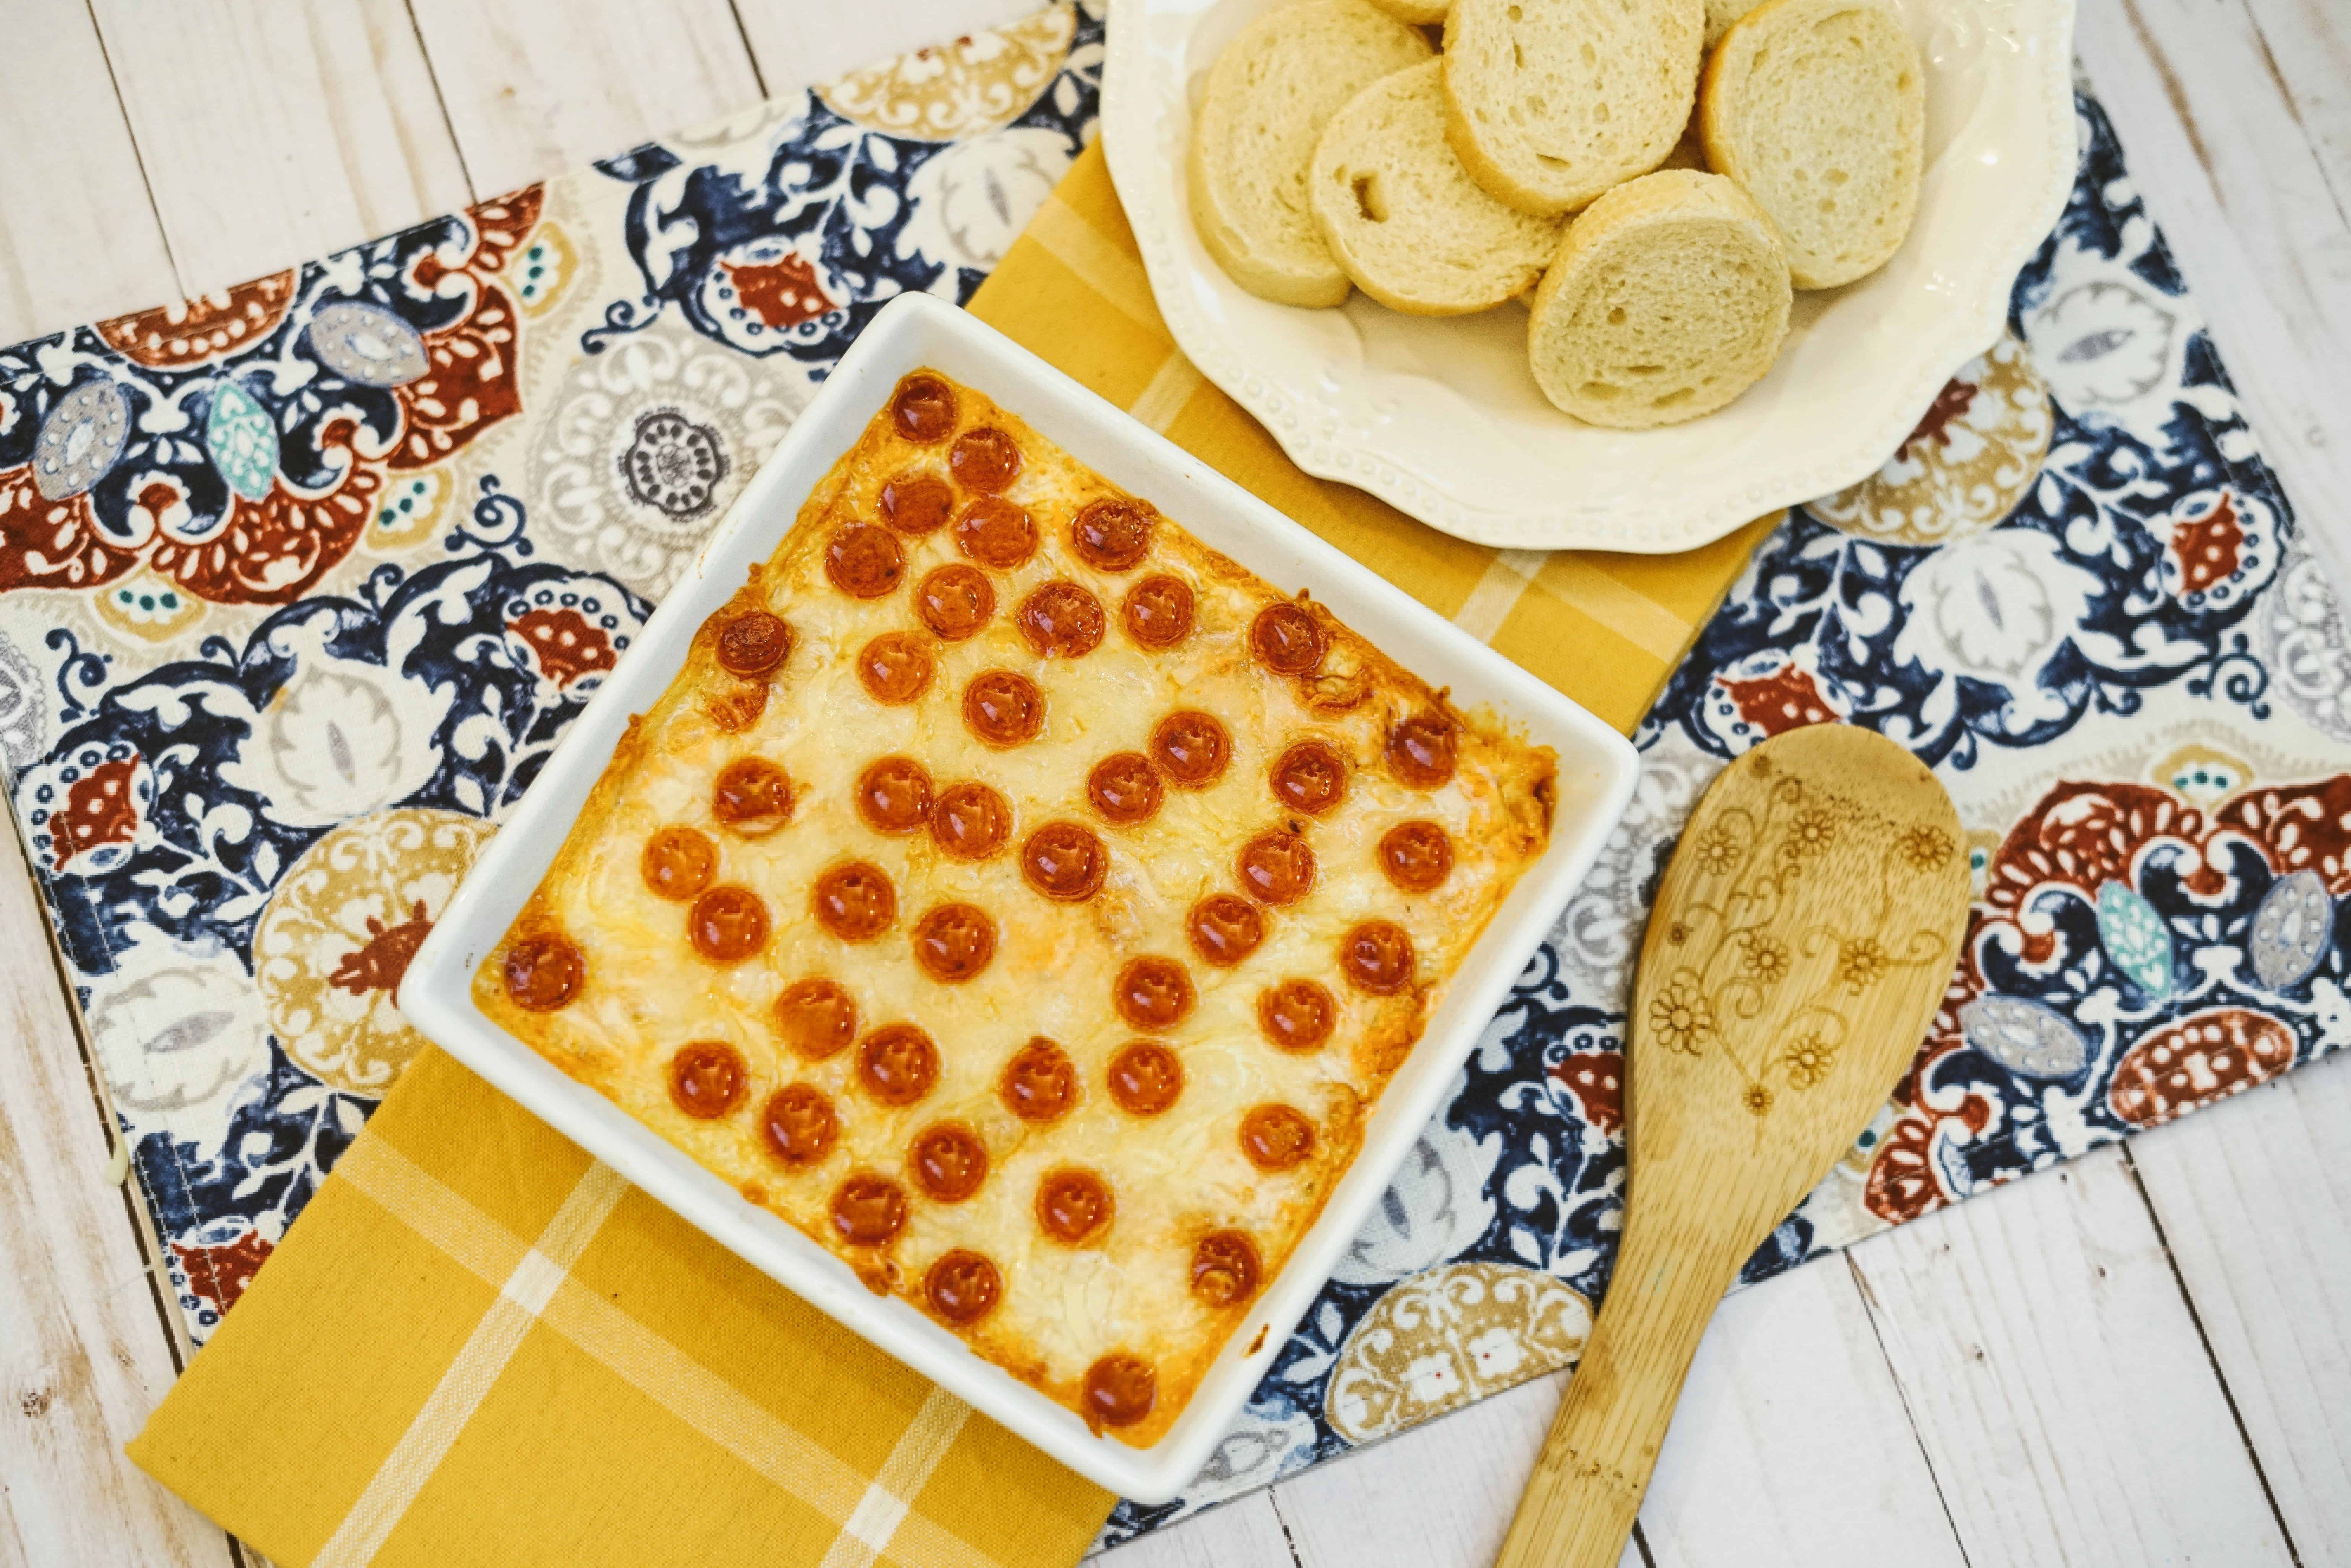 pizza dip prepared on table